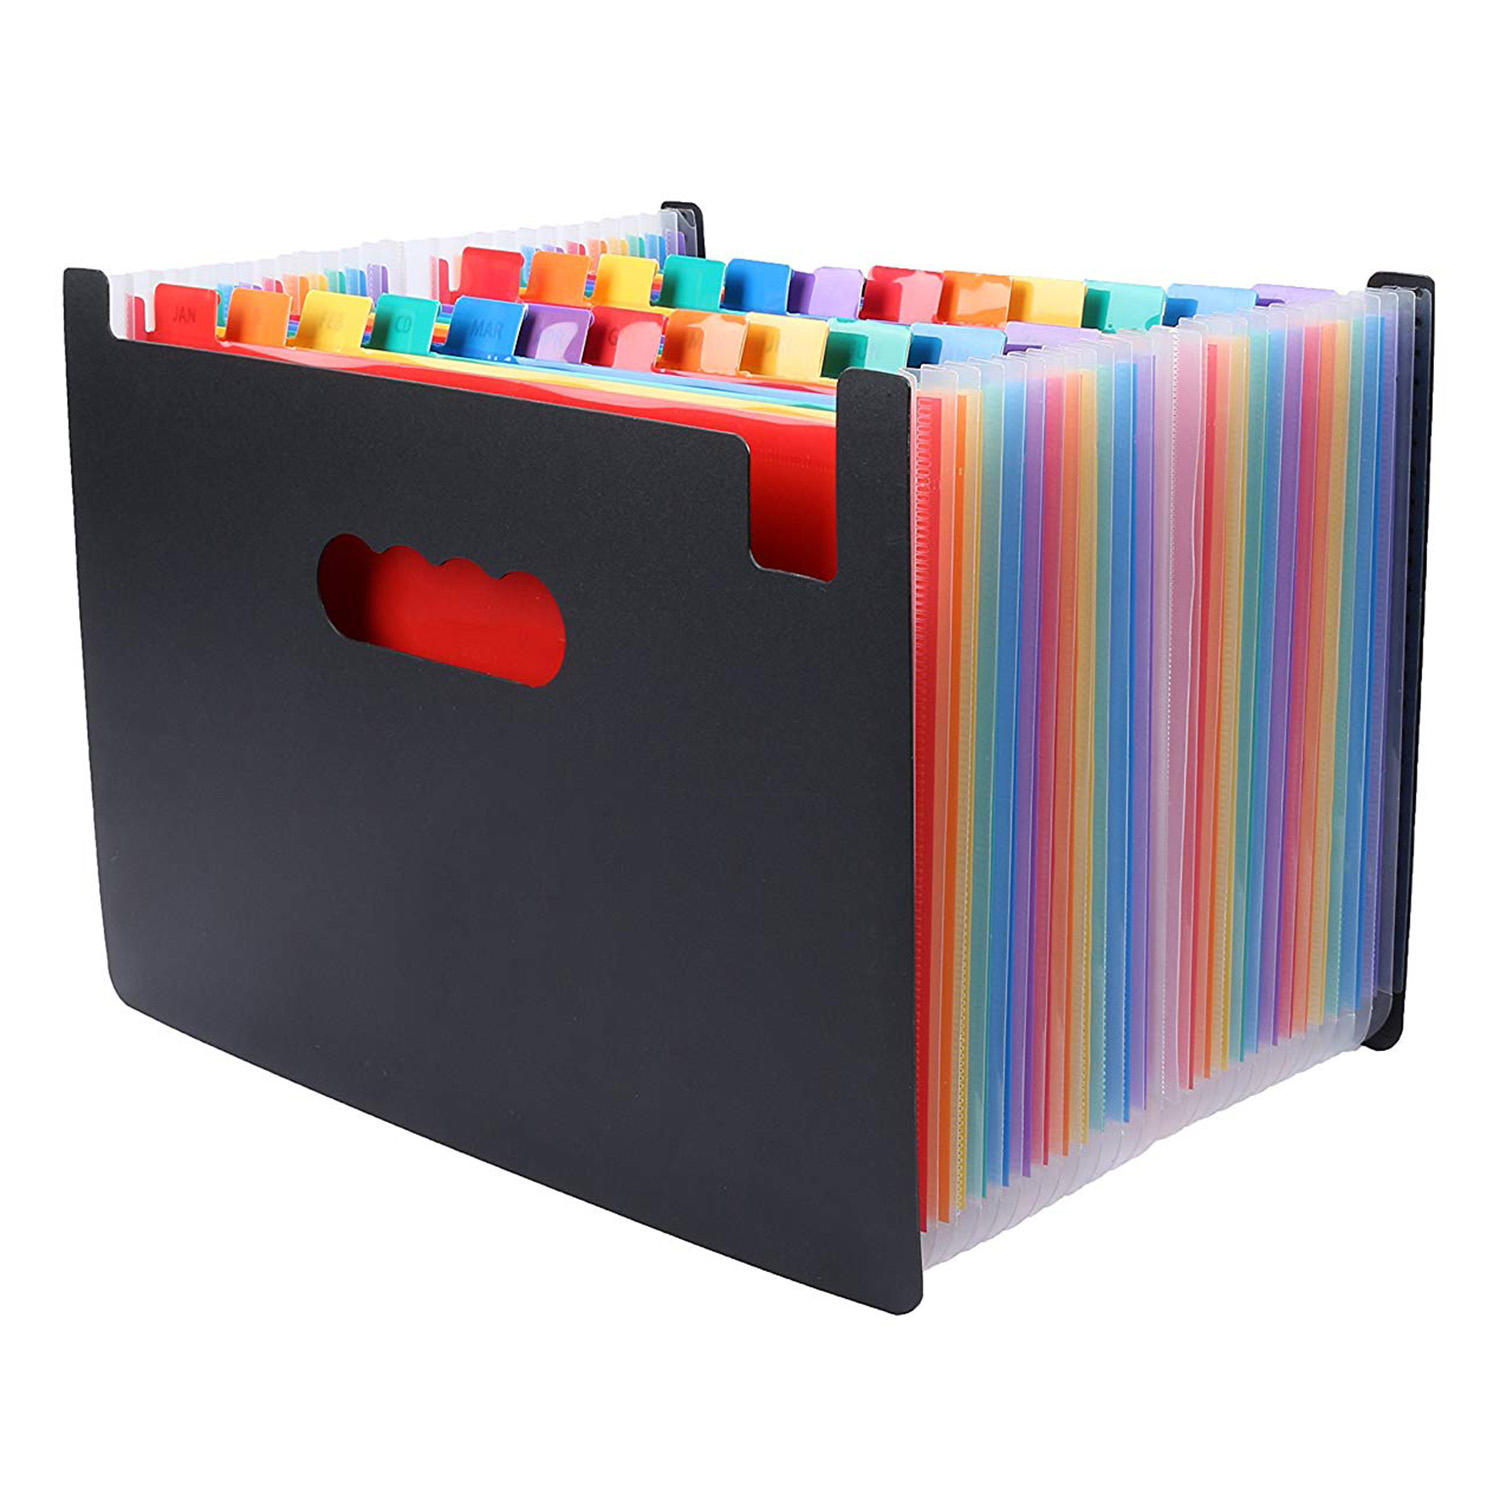 24 Pockets Expanding File Folder Large Space Design A4 Filing Folders Box File Business Home Office Document Accordion File St